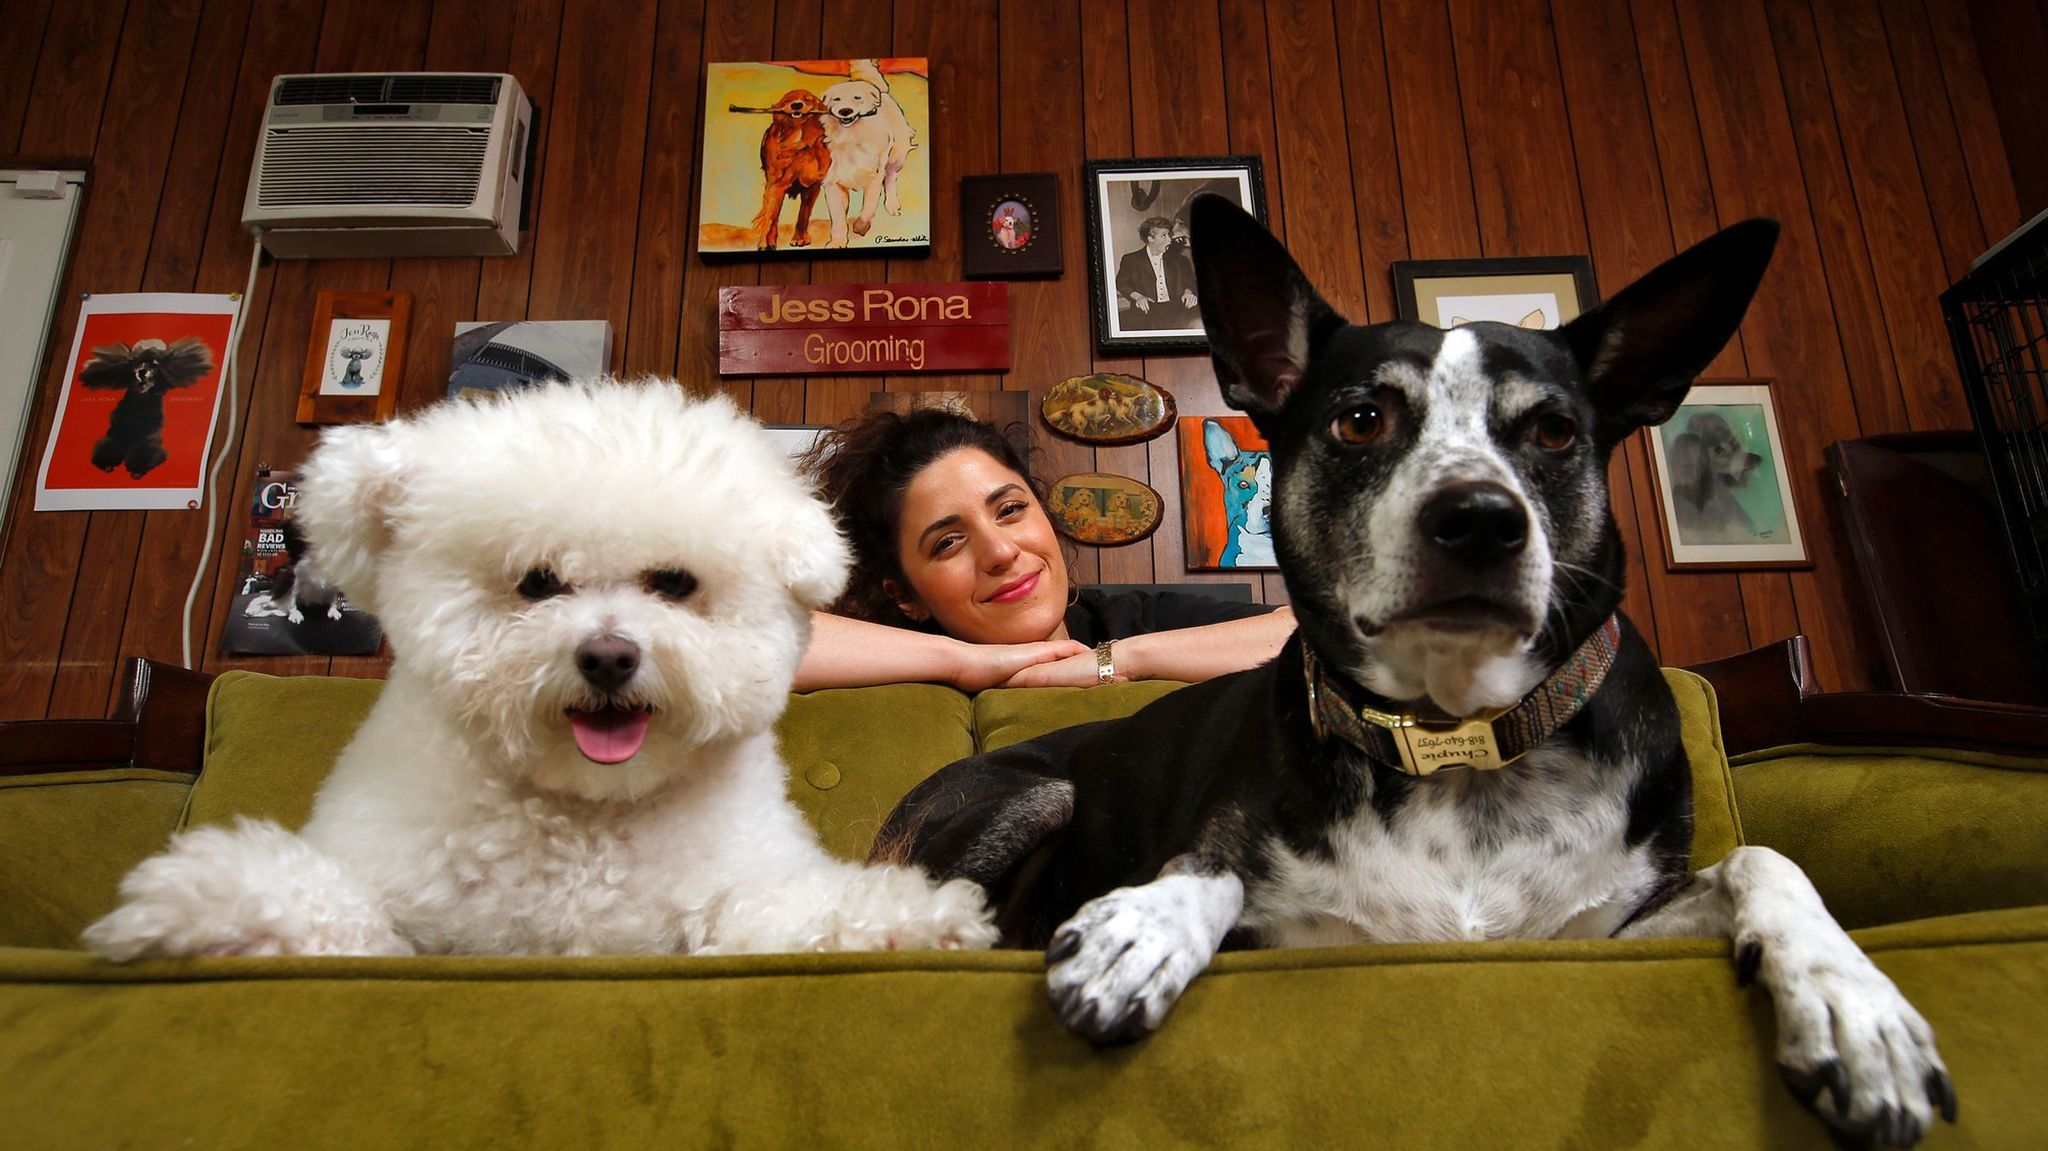 Dog grooming artist Jess Rona with Meemu, left, and Chupie, at her grooming studio in Los Angeles.